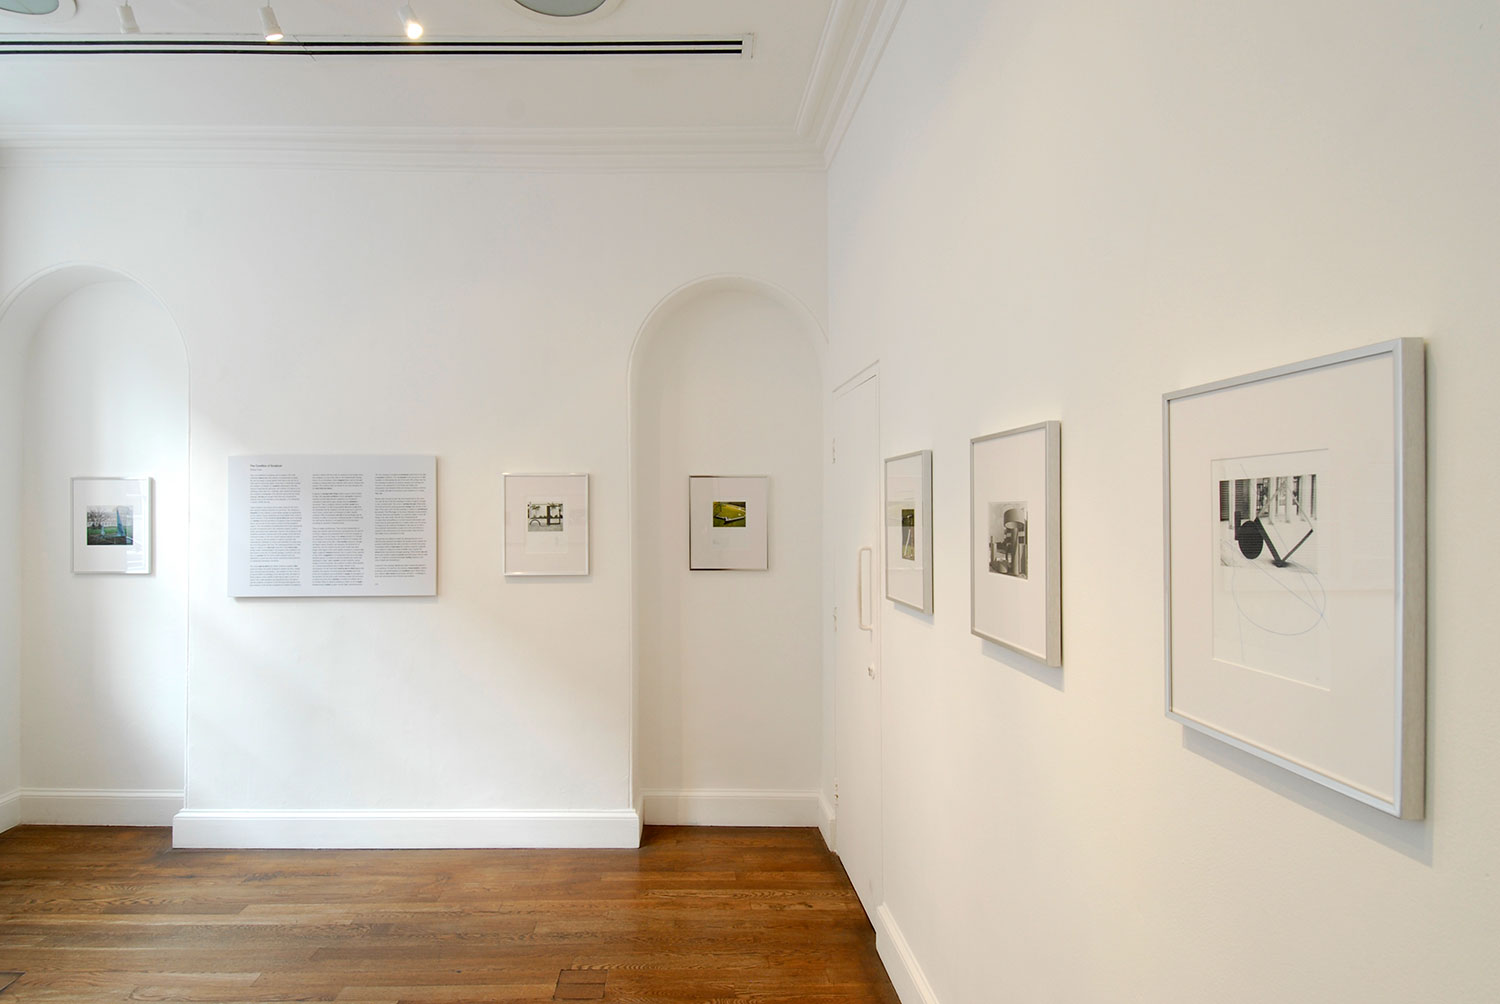 Installation view of Unfinished Business: Mark Wilsher 2